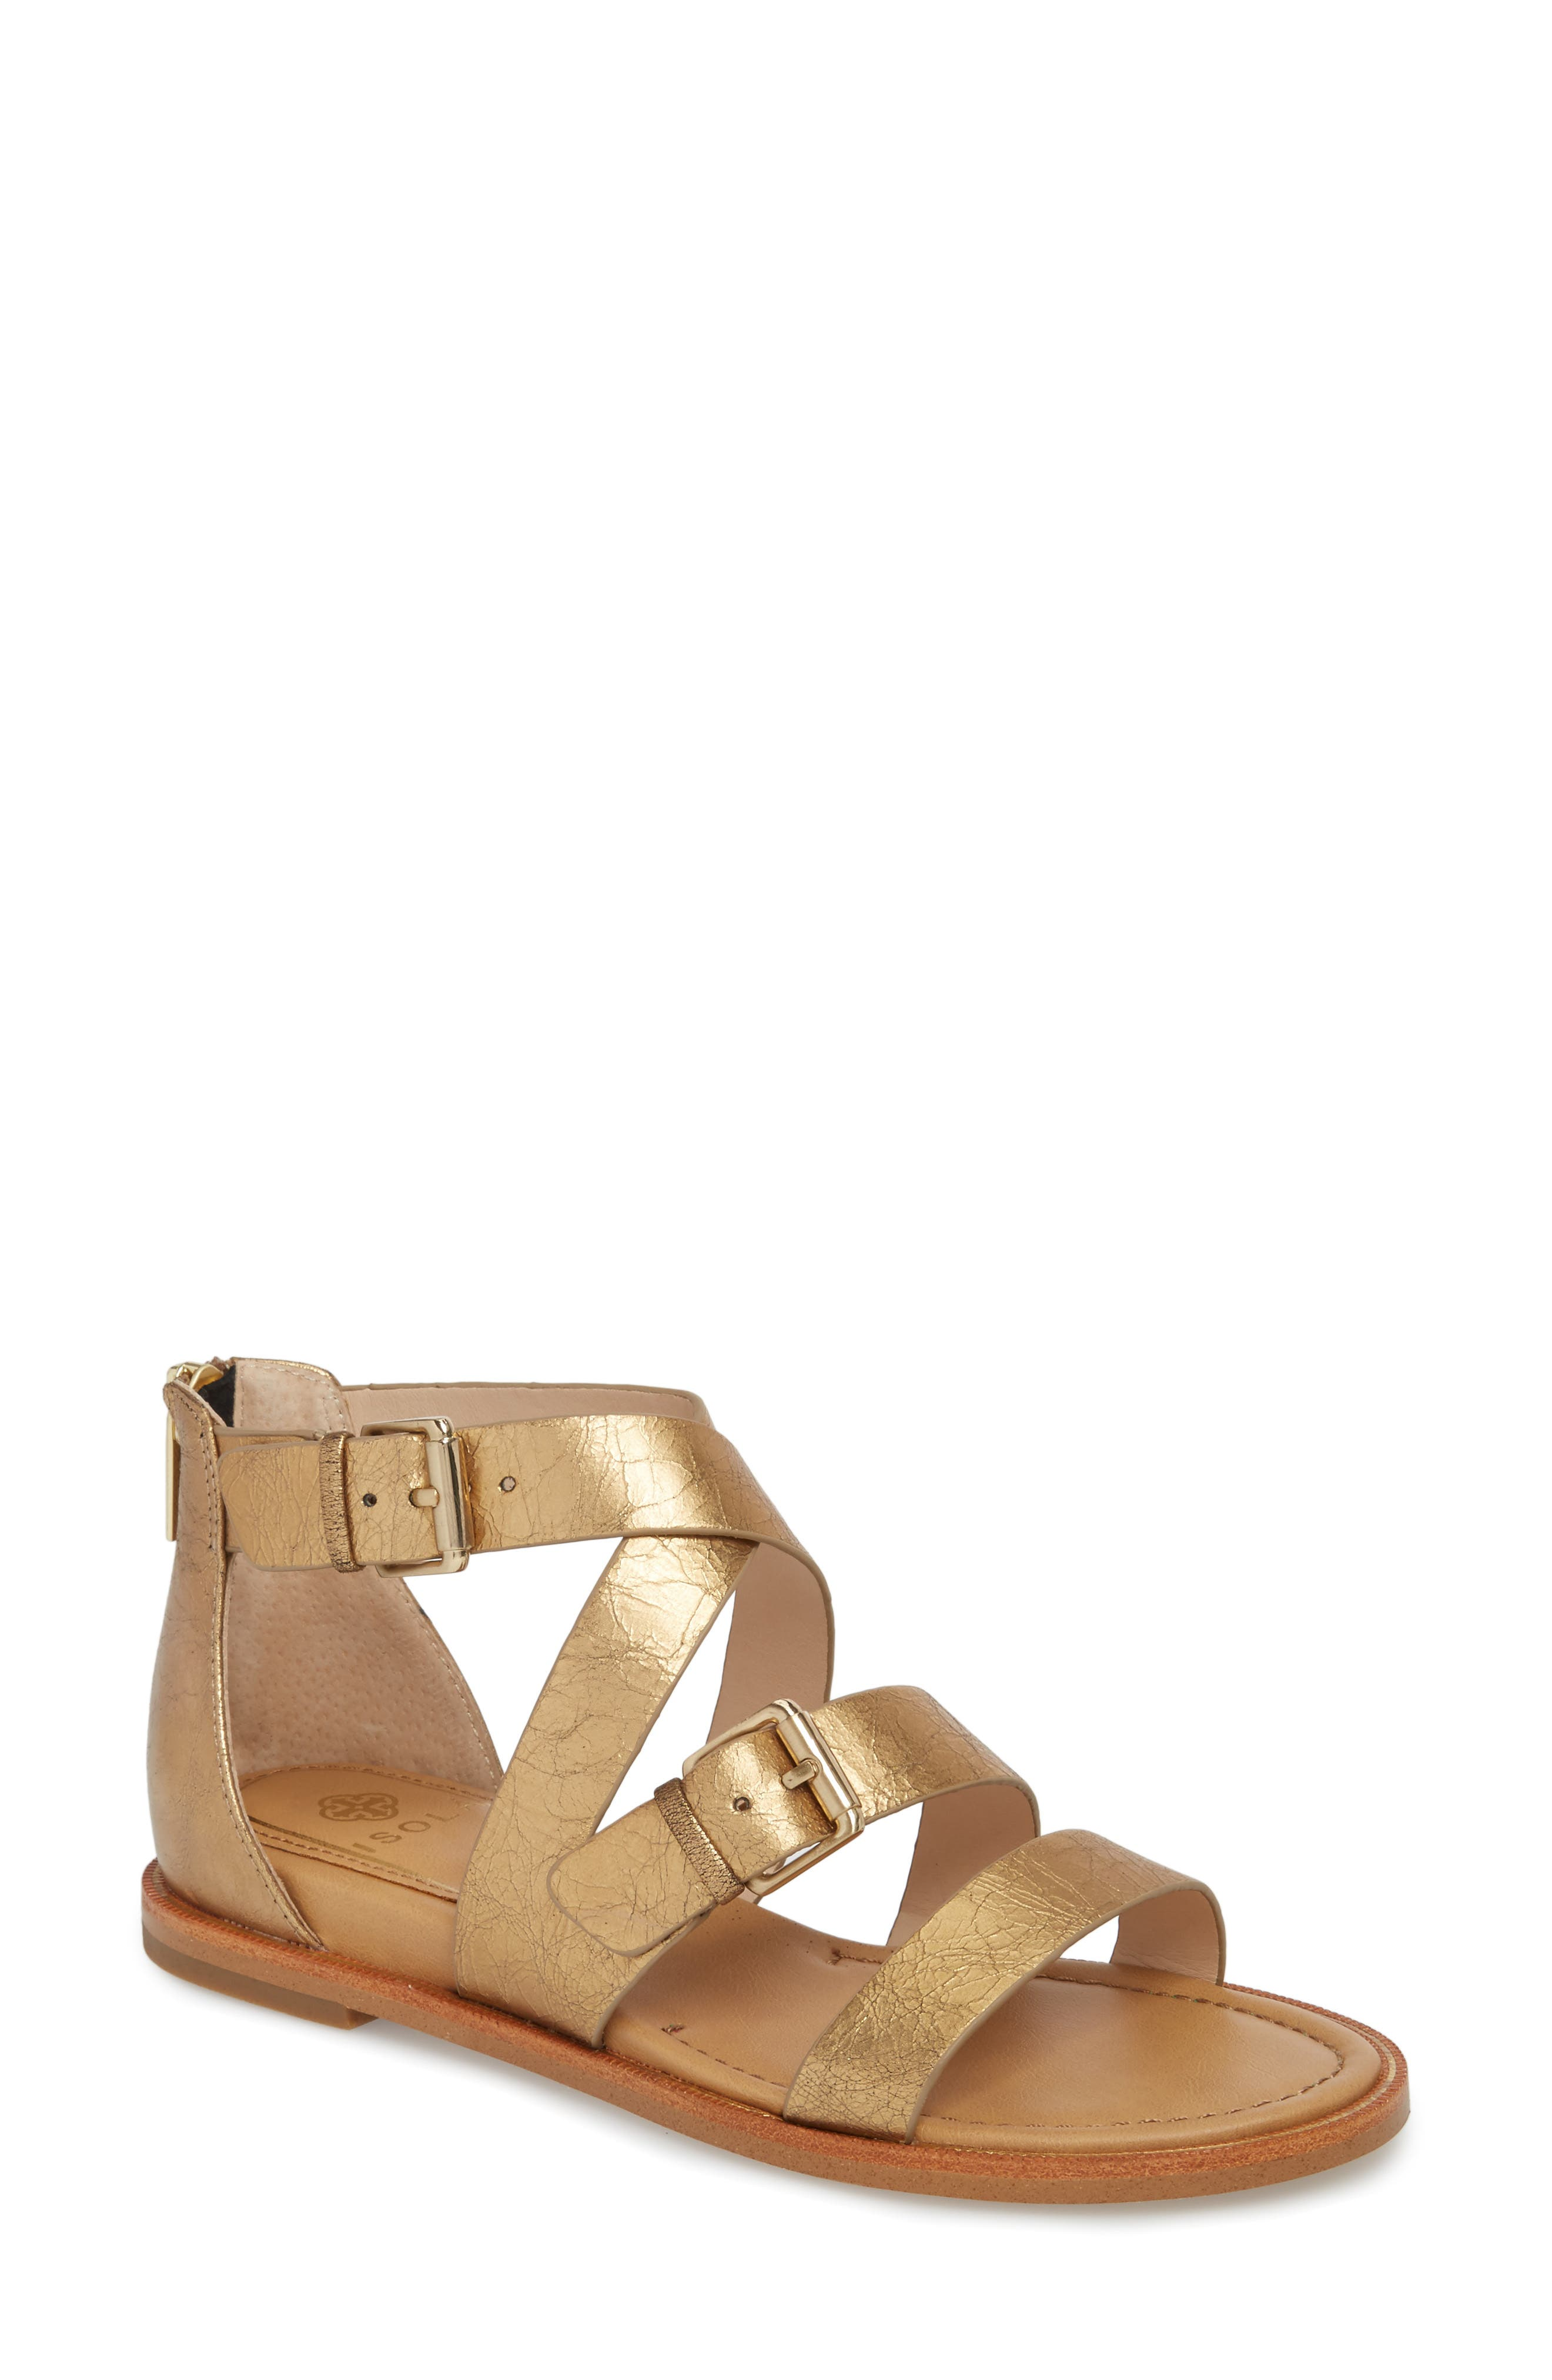 Isola Sharni Sandal,                         Main,                         color, Old Gold Leather